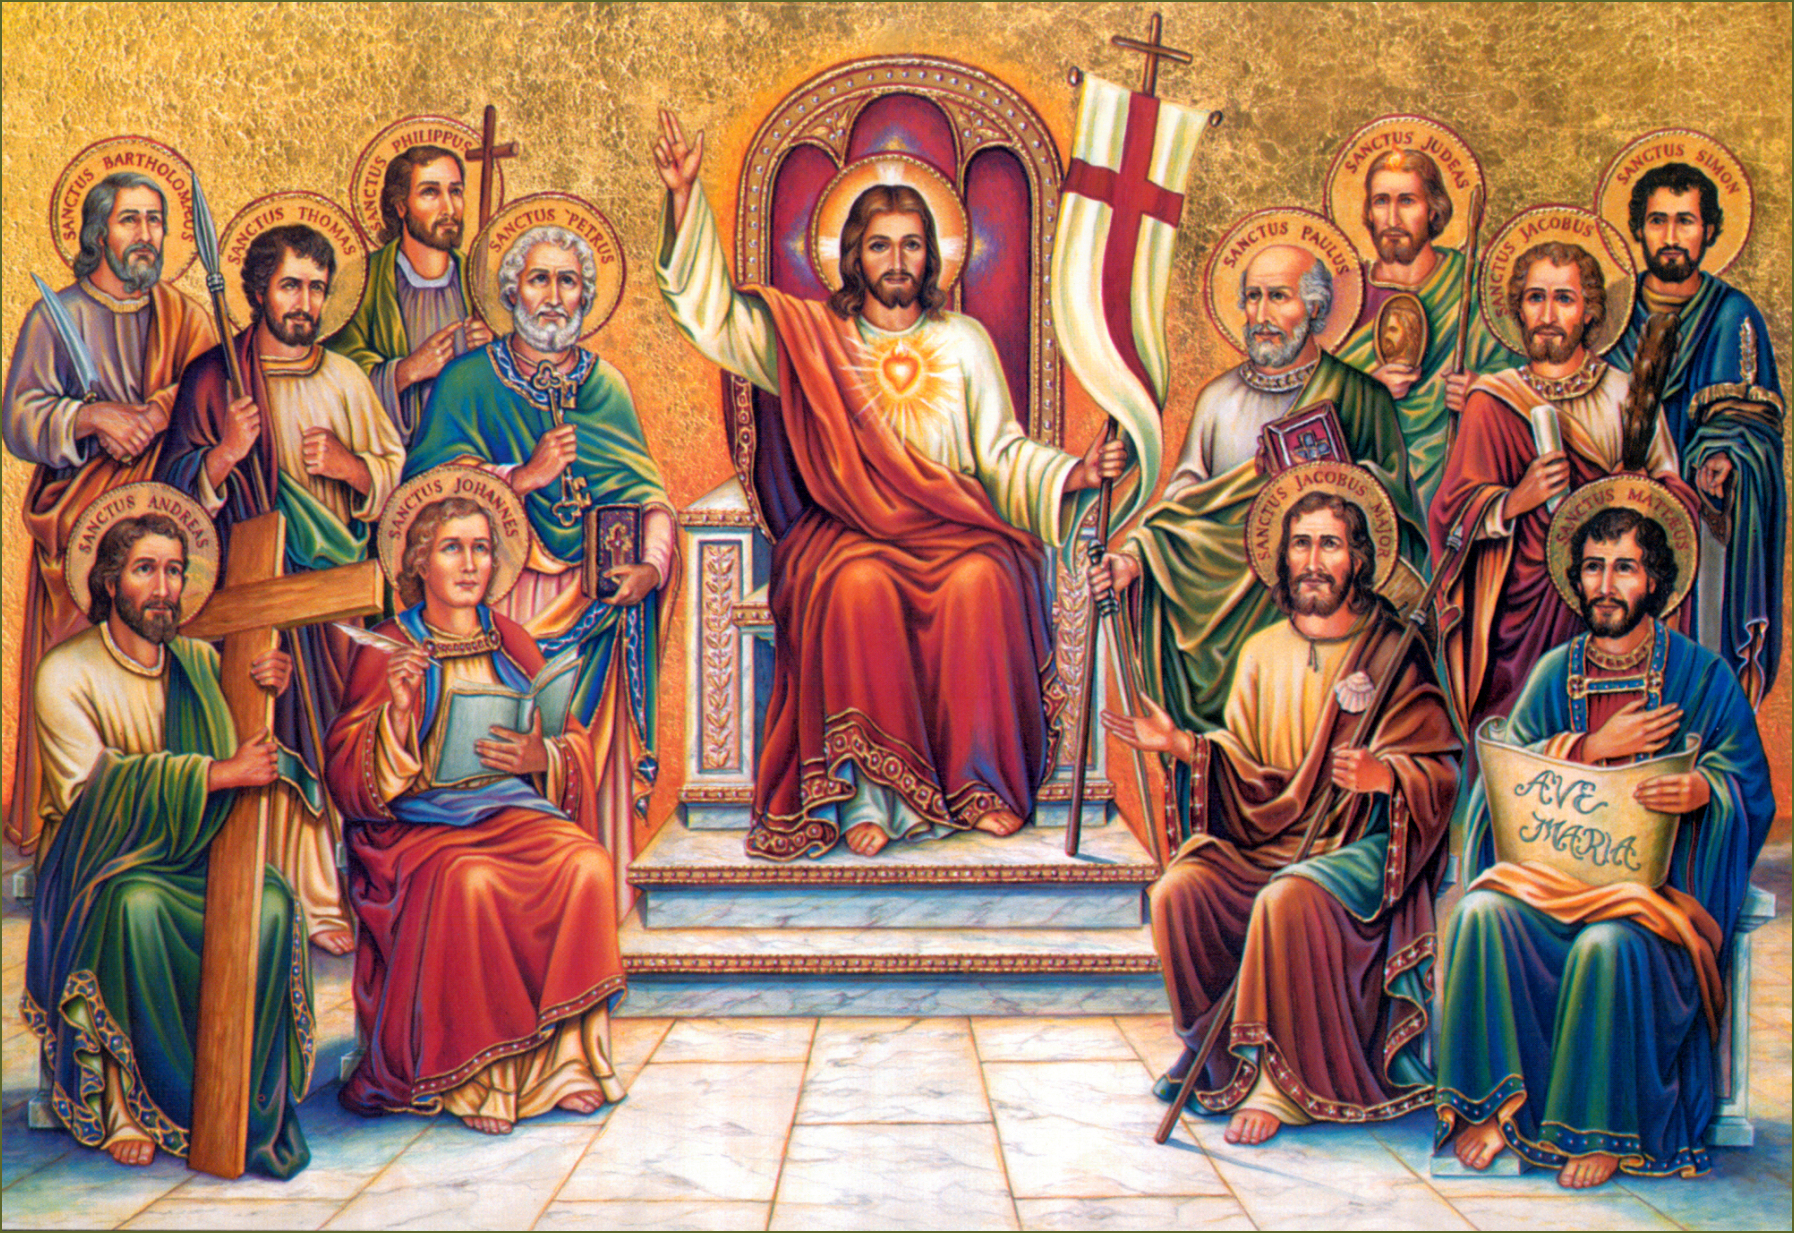 CHRIST THE KING WITH APOSTLES